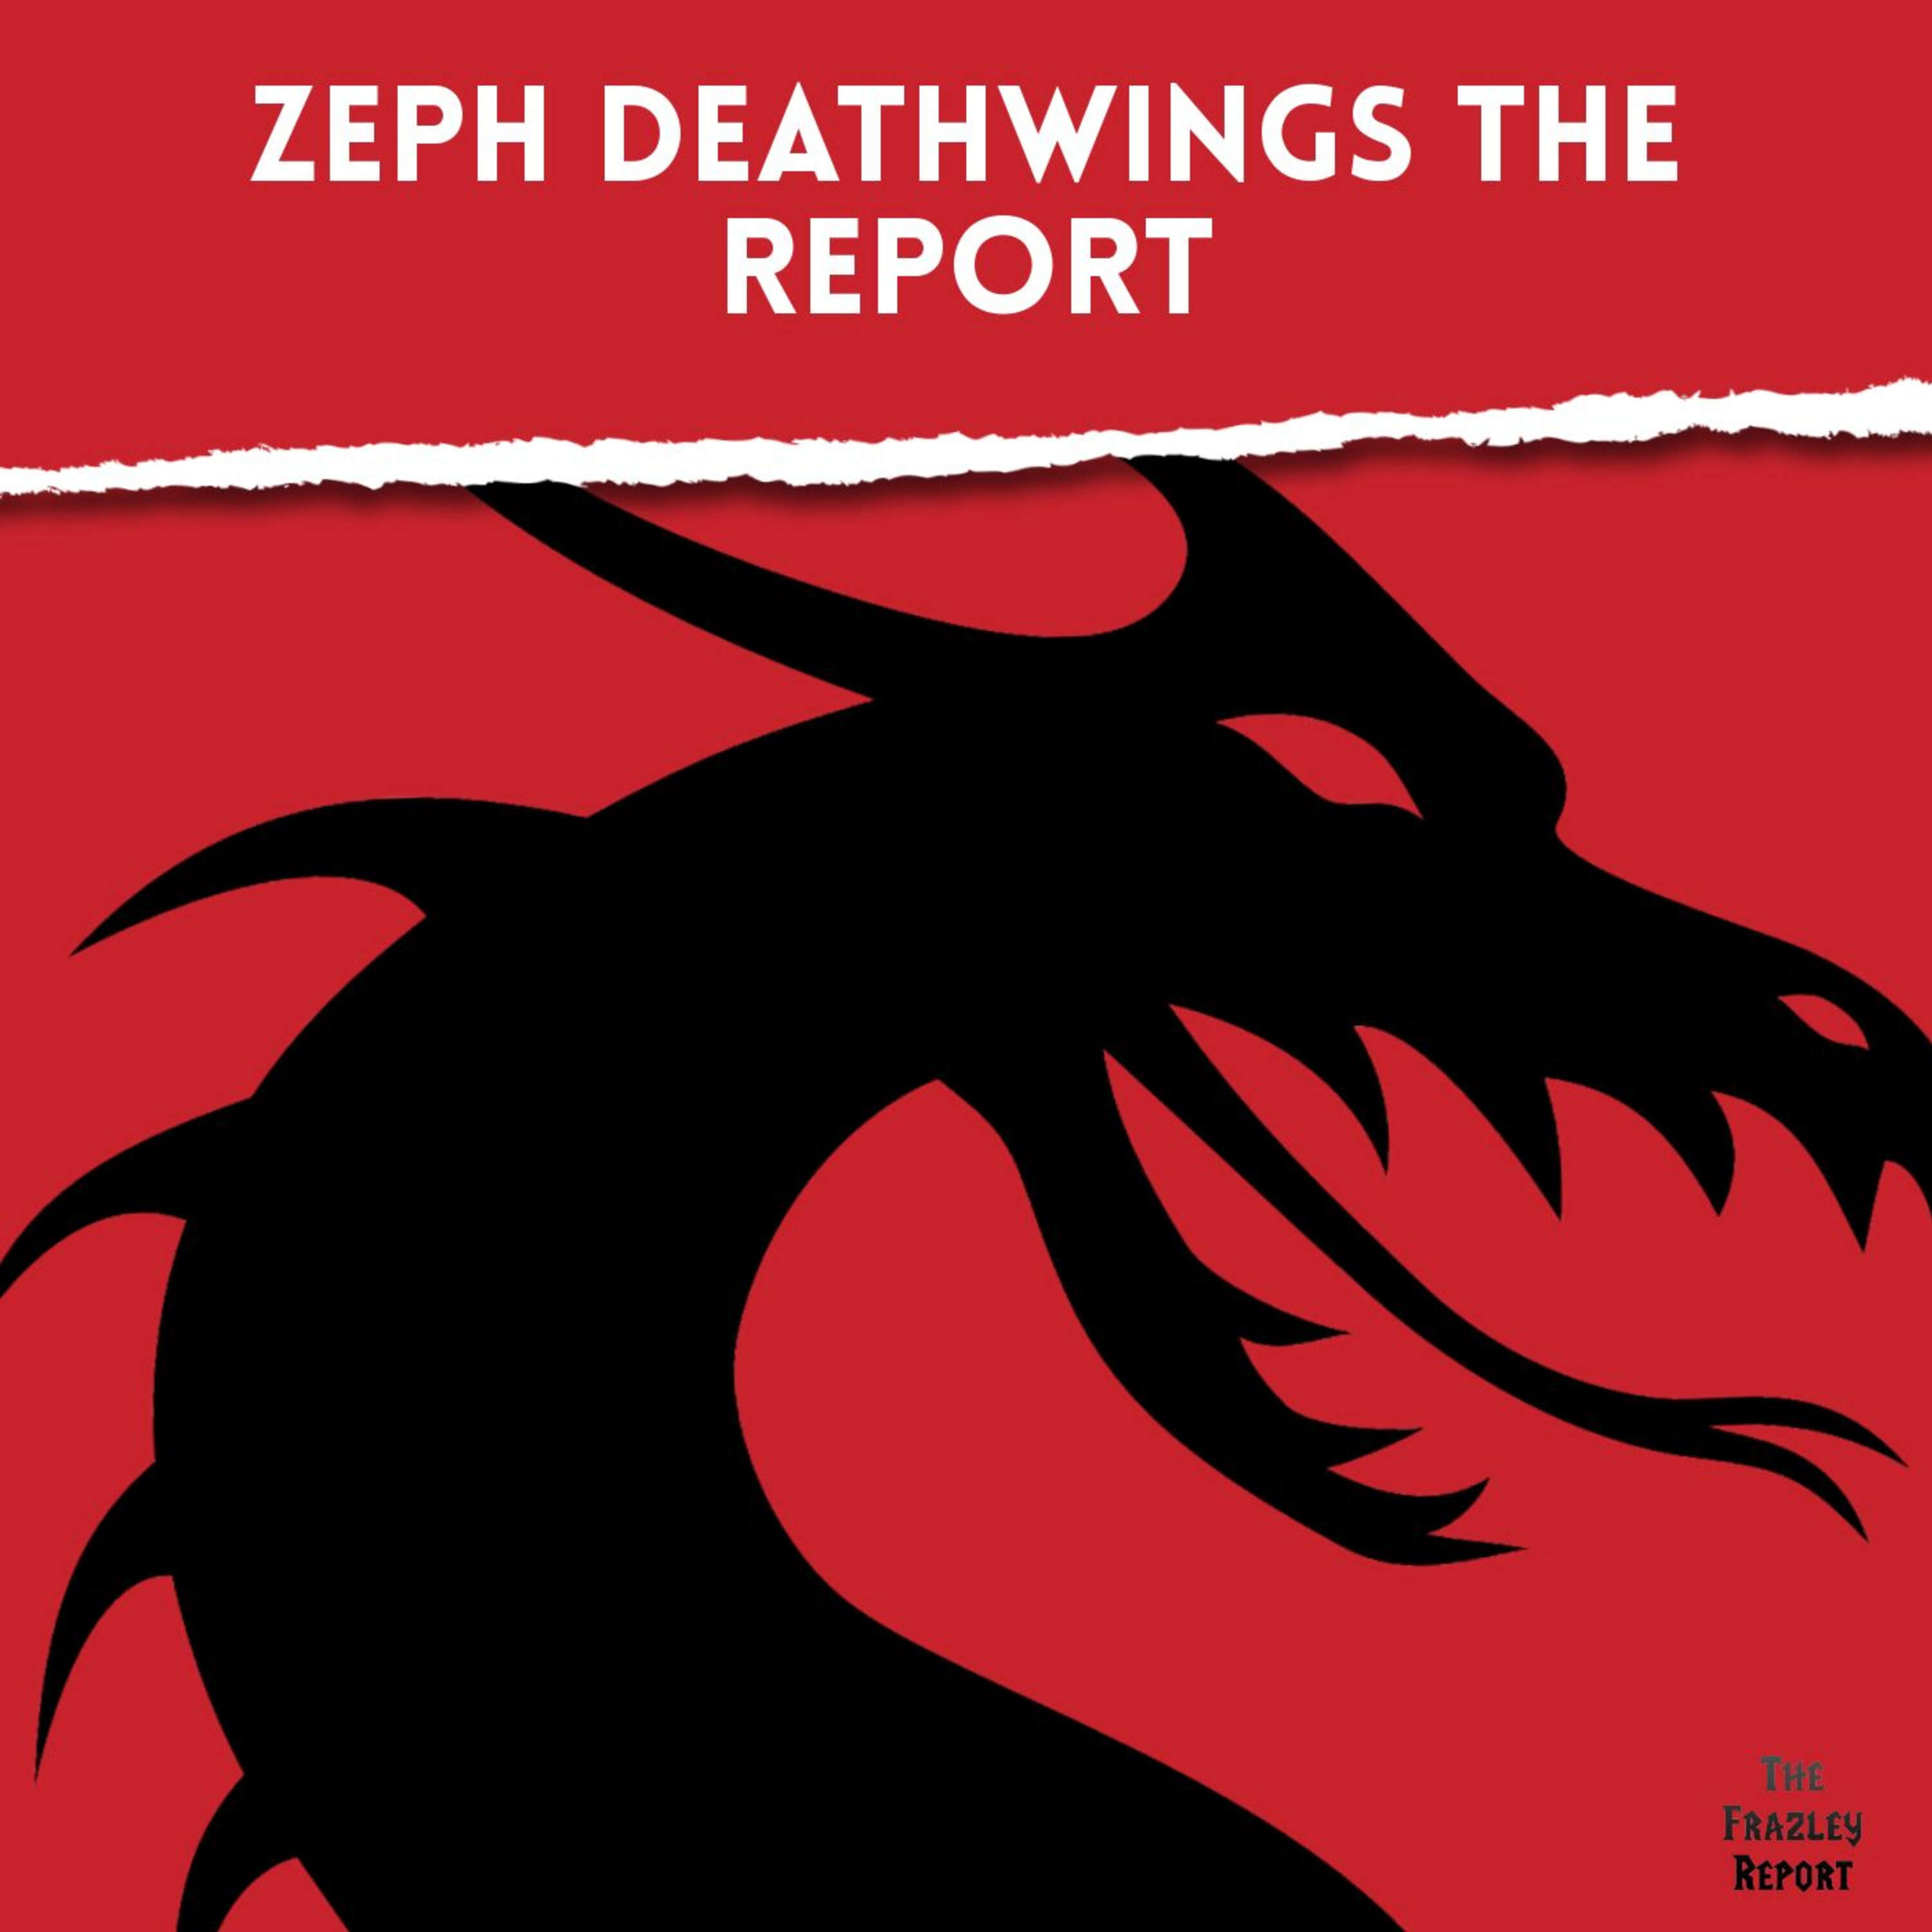 Zeph Deathwings The Report